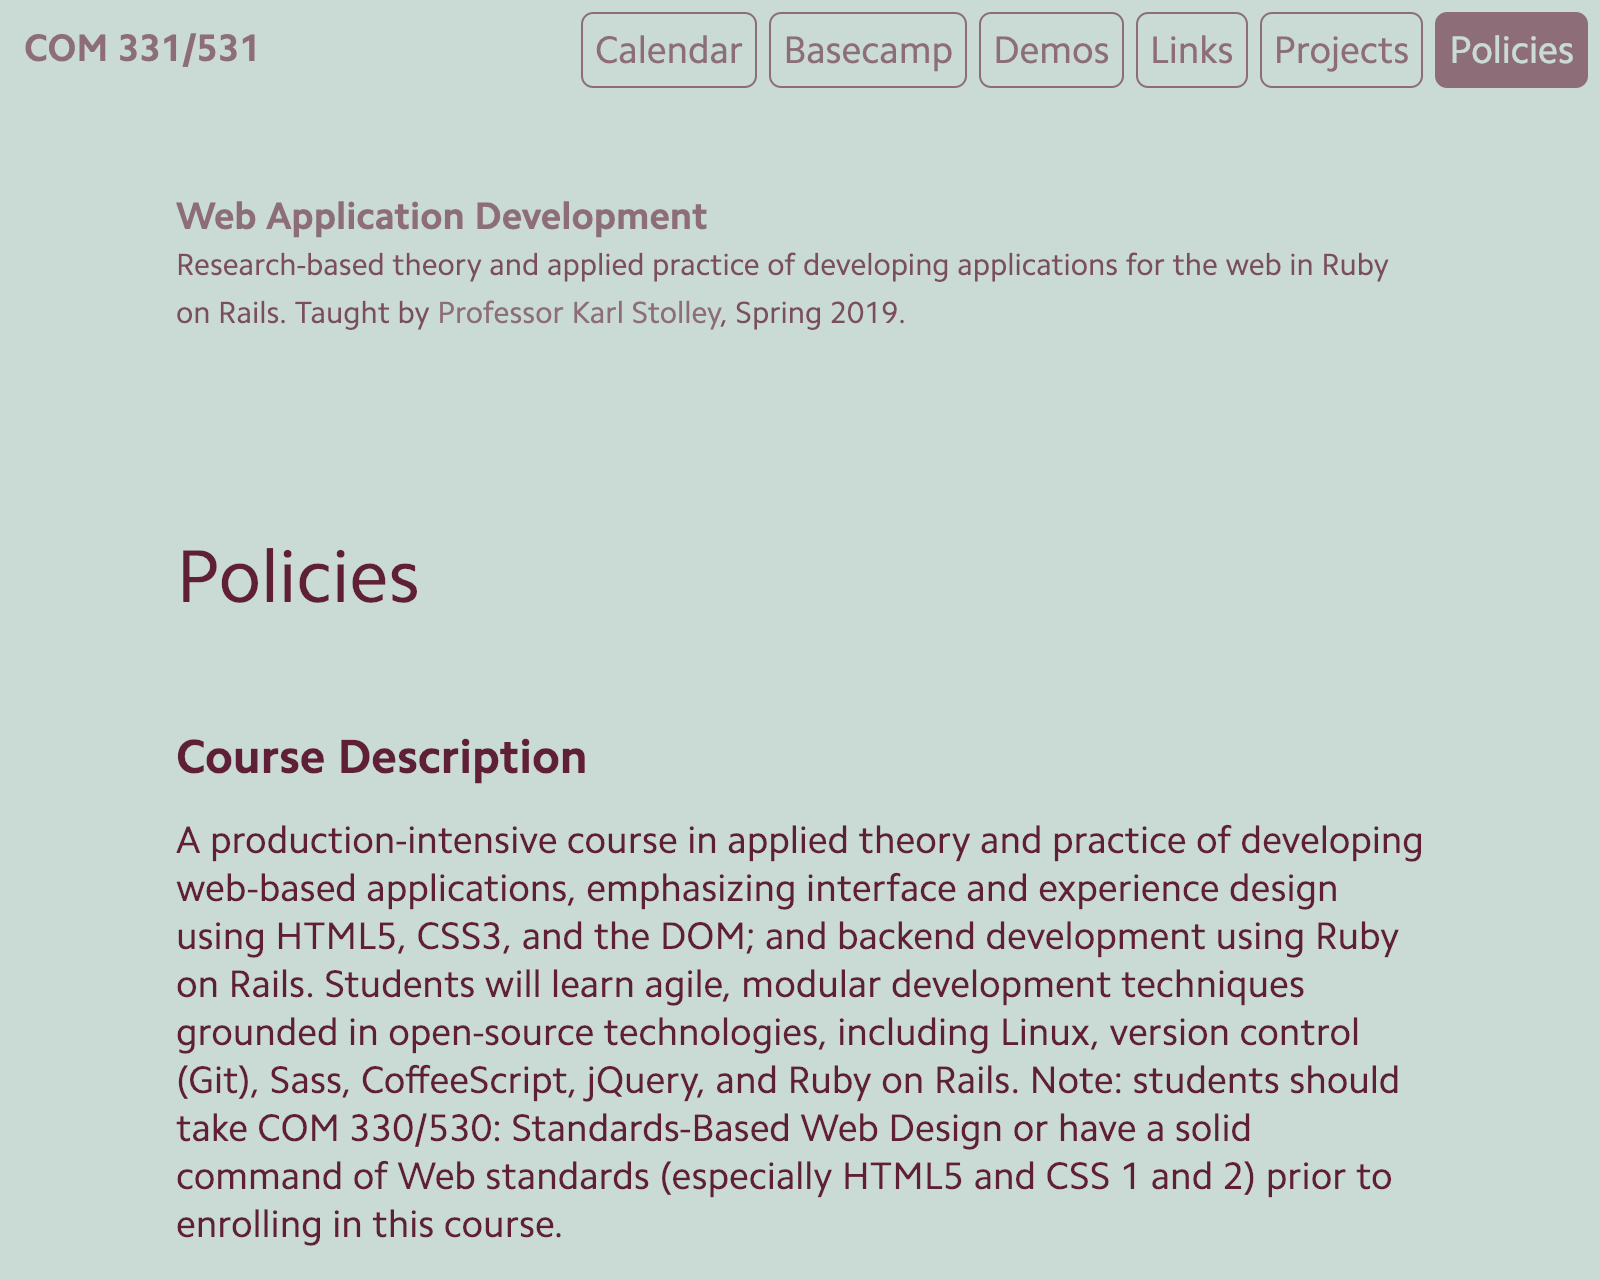 Screenshot of COM 331 site.